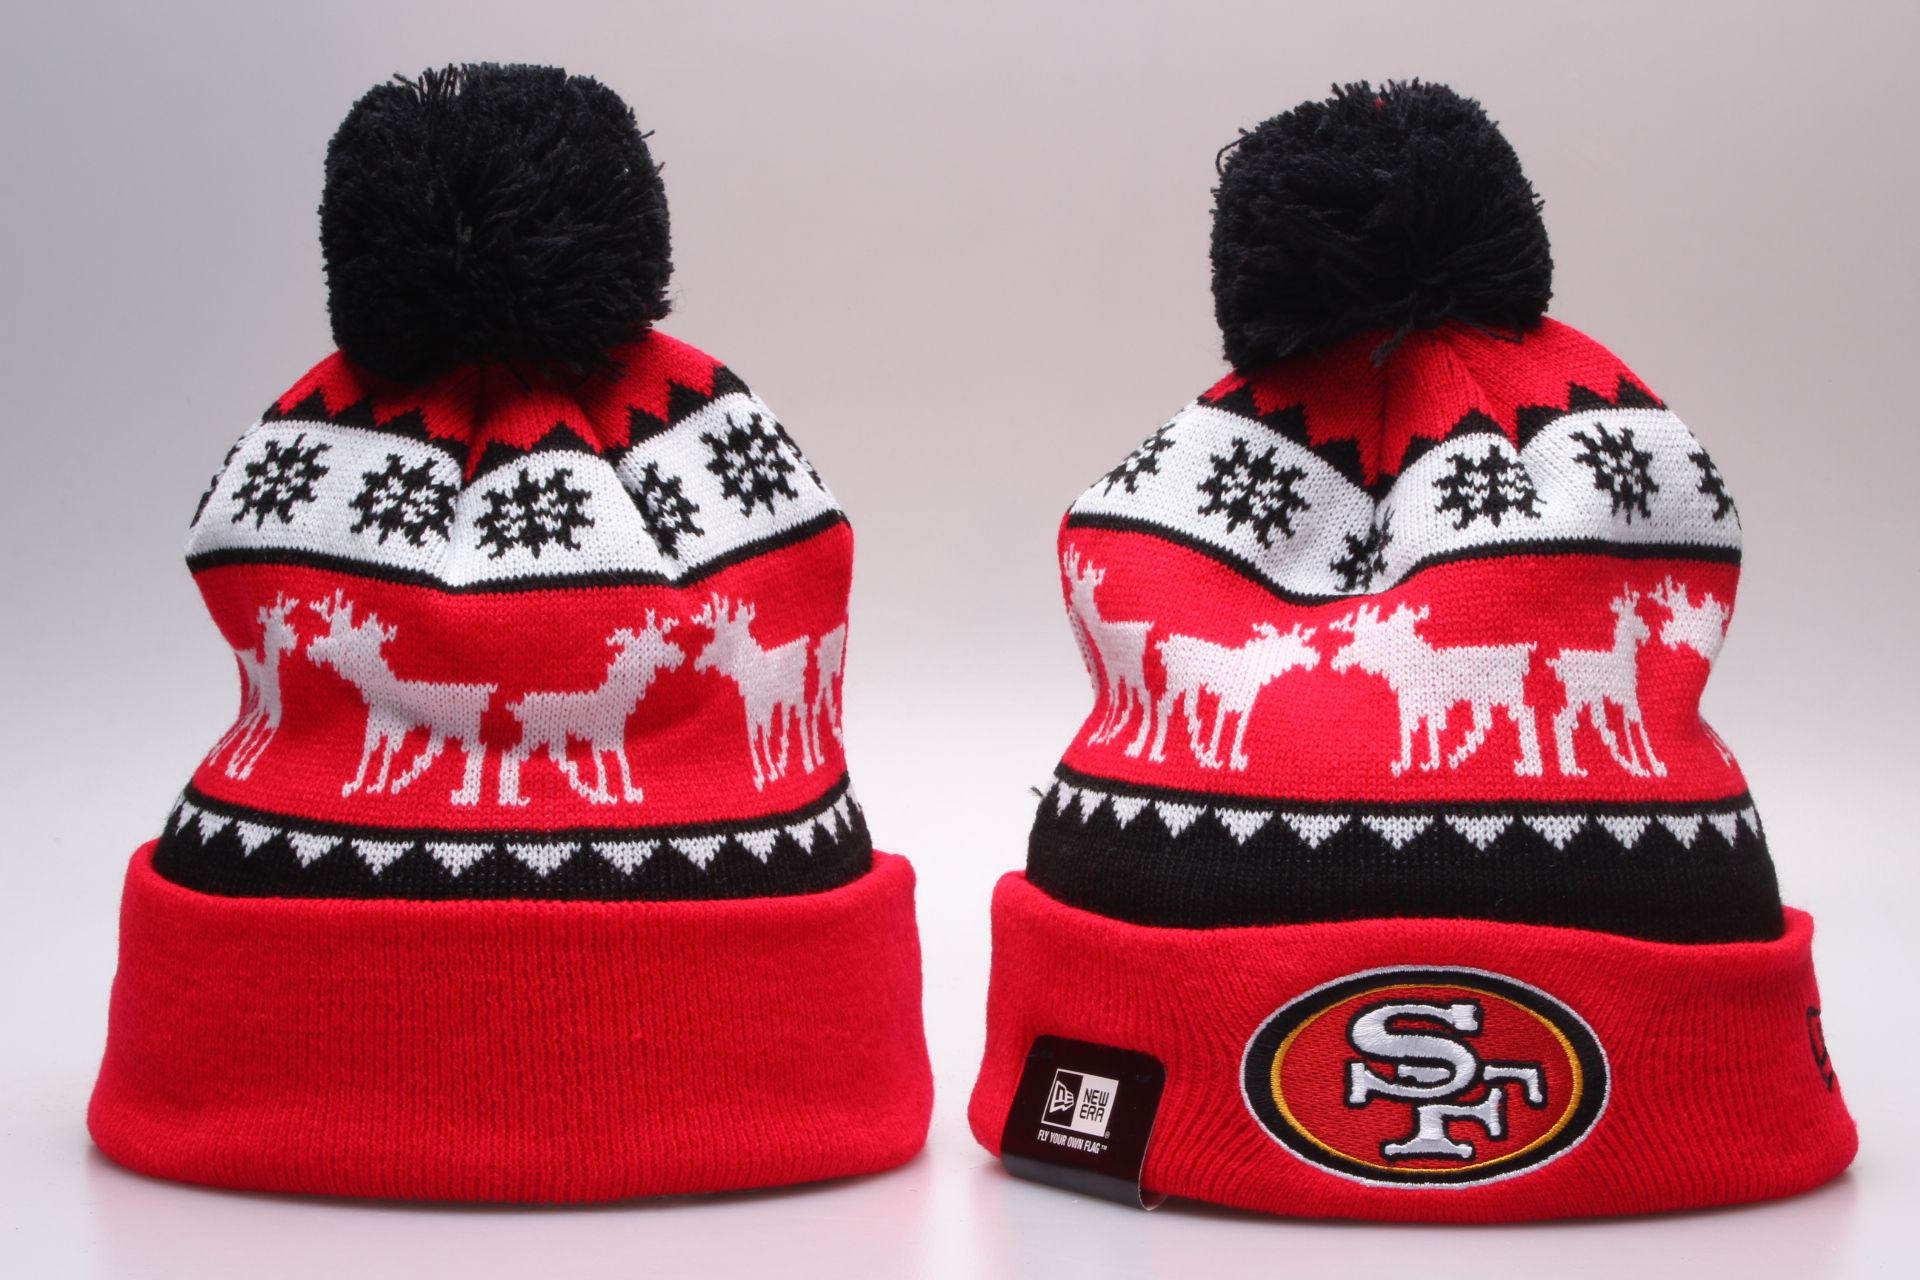 NFL San Francisco 49ers Beanie hot hat2